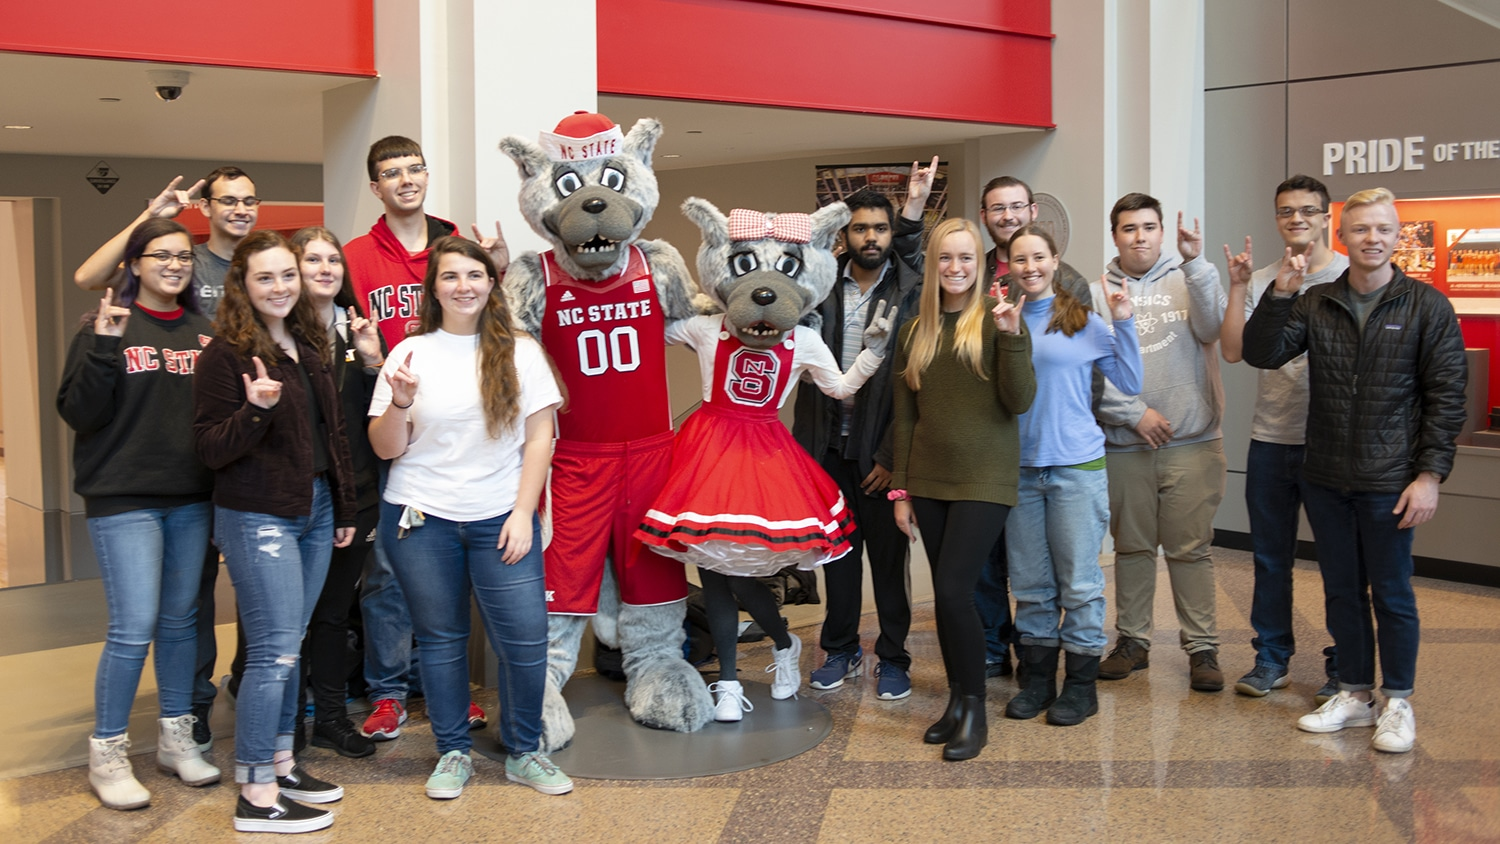 The Solomon Scholars pose with Mr. and Ms. Wuf in Reynolds Coliseum